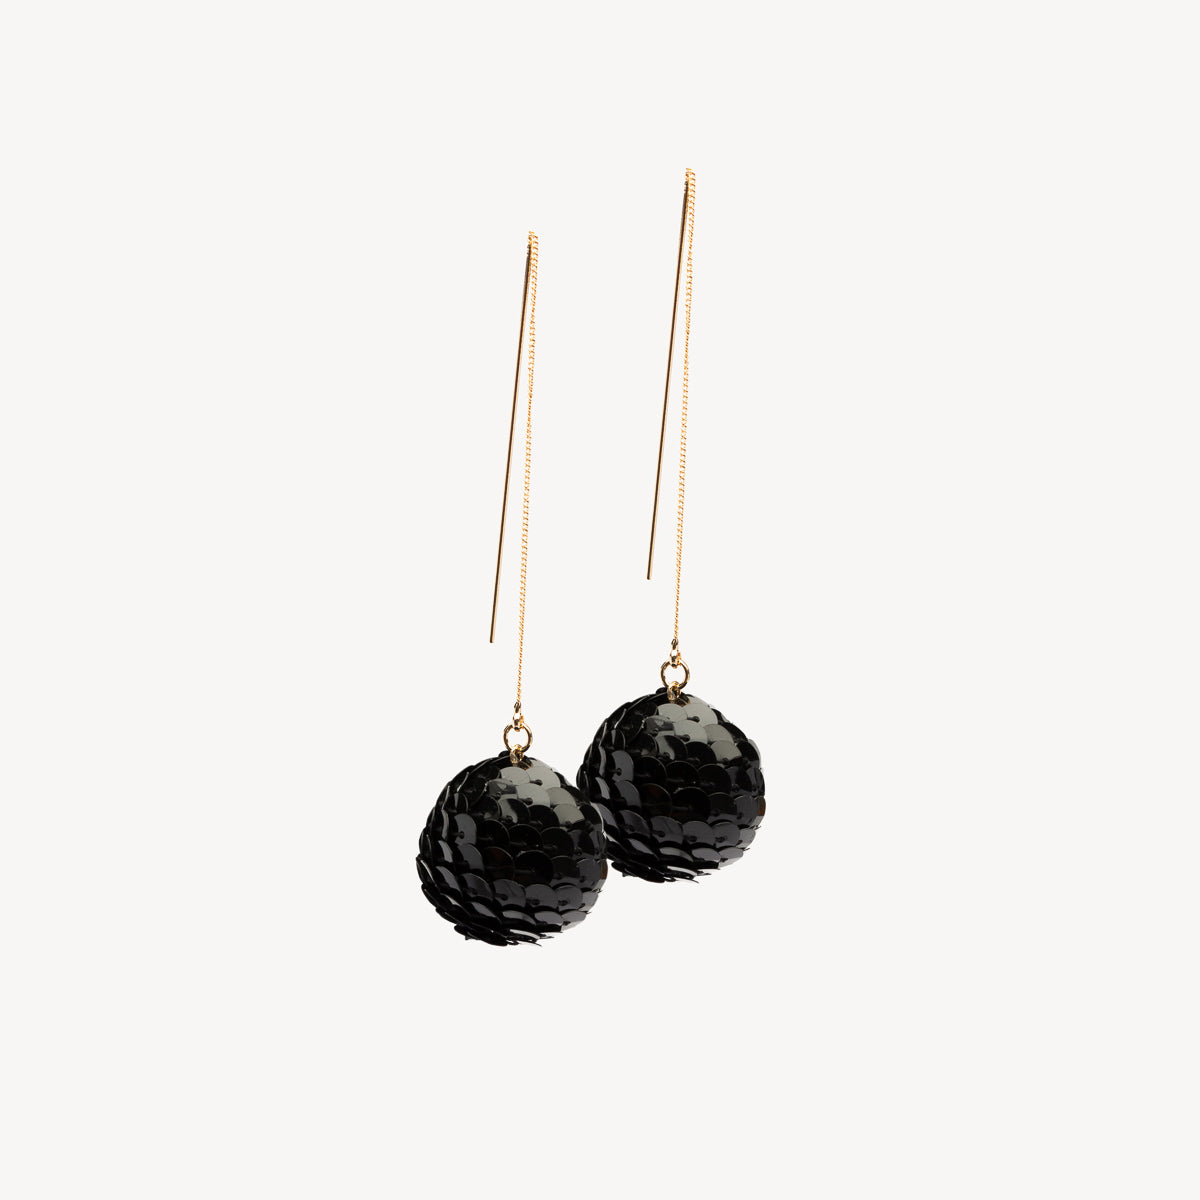 Sequin Drop Ball Earrings - Black